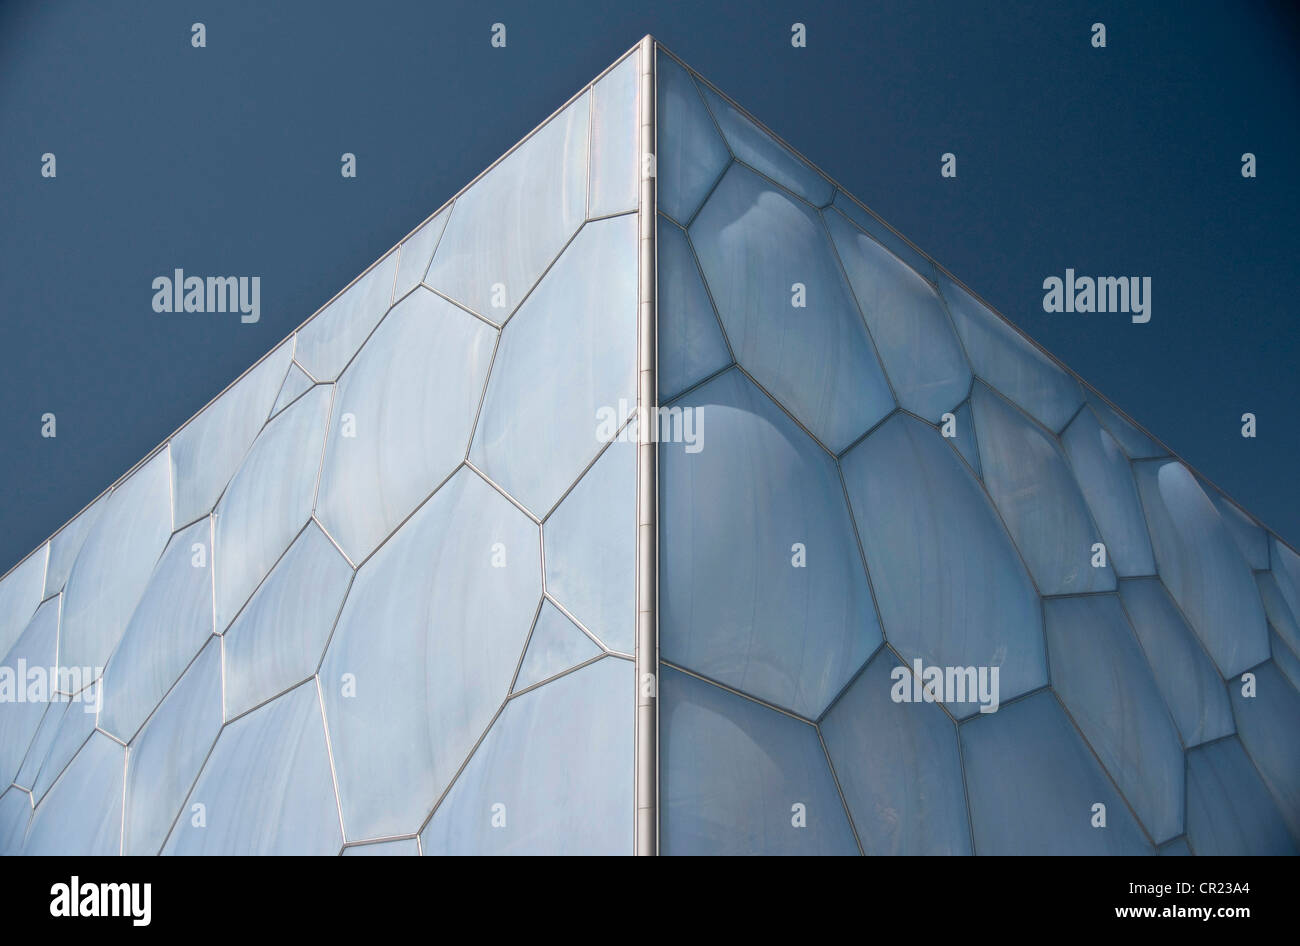 China, Detail of National Aquatic Center, the Water Cube - Stock Image